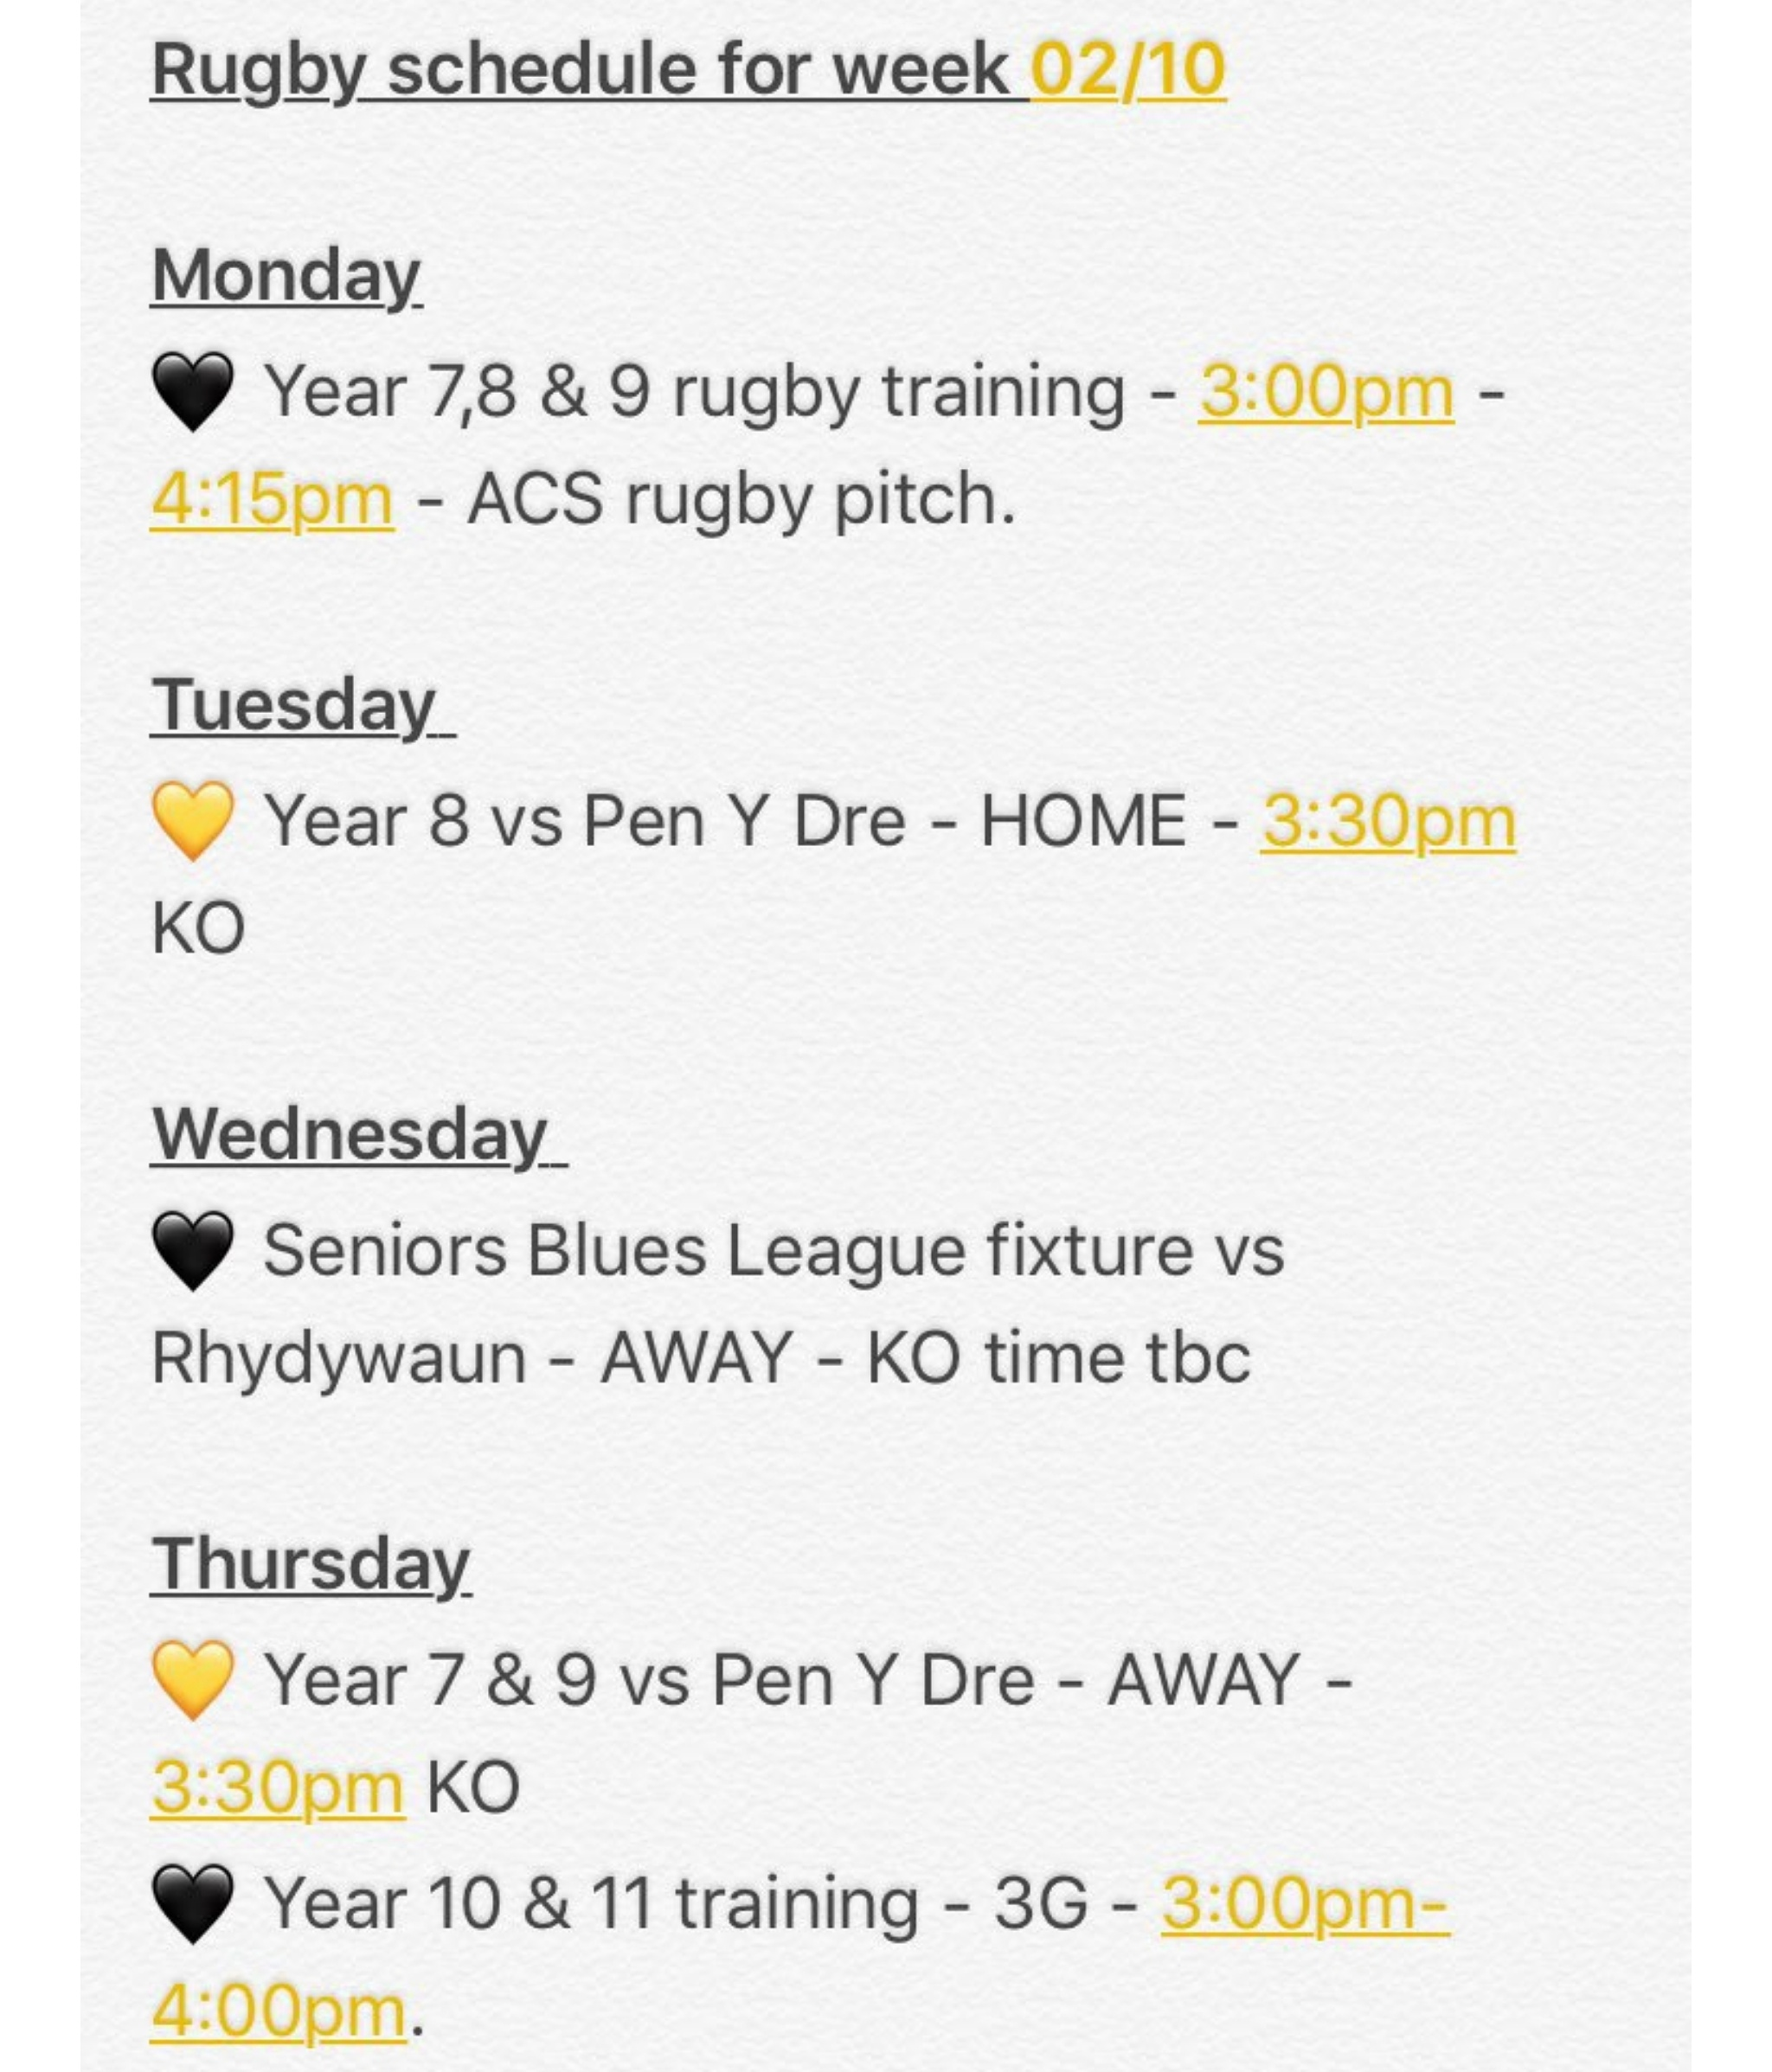 """""""Please see our rugby schedule for the first week of October. #autumnrugby"""""""